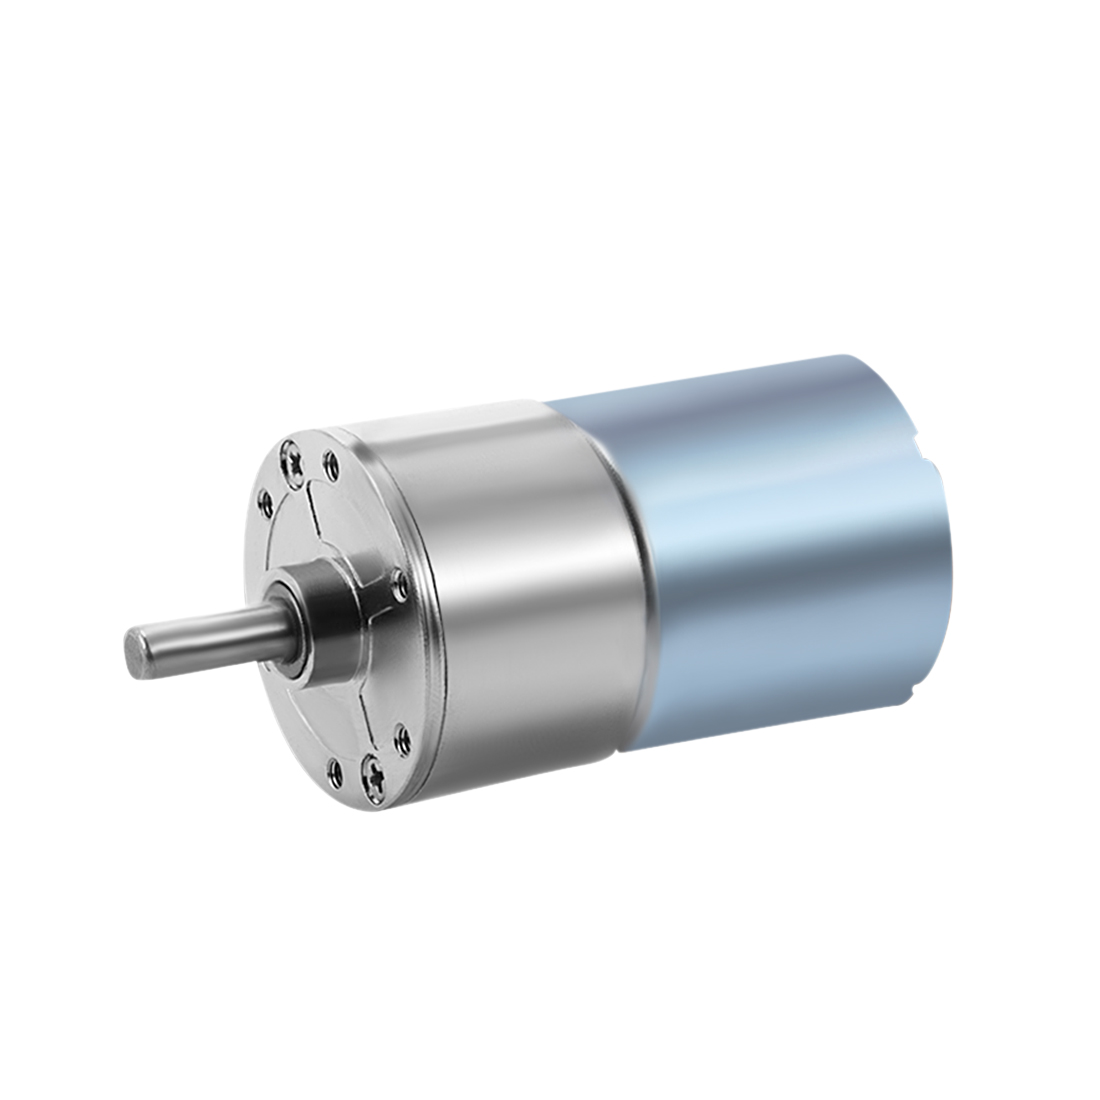 DC 12V 100RPM Micro Gear Box Motor Speed Reduction Gearbox Centric Output Shaft